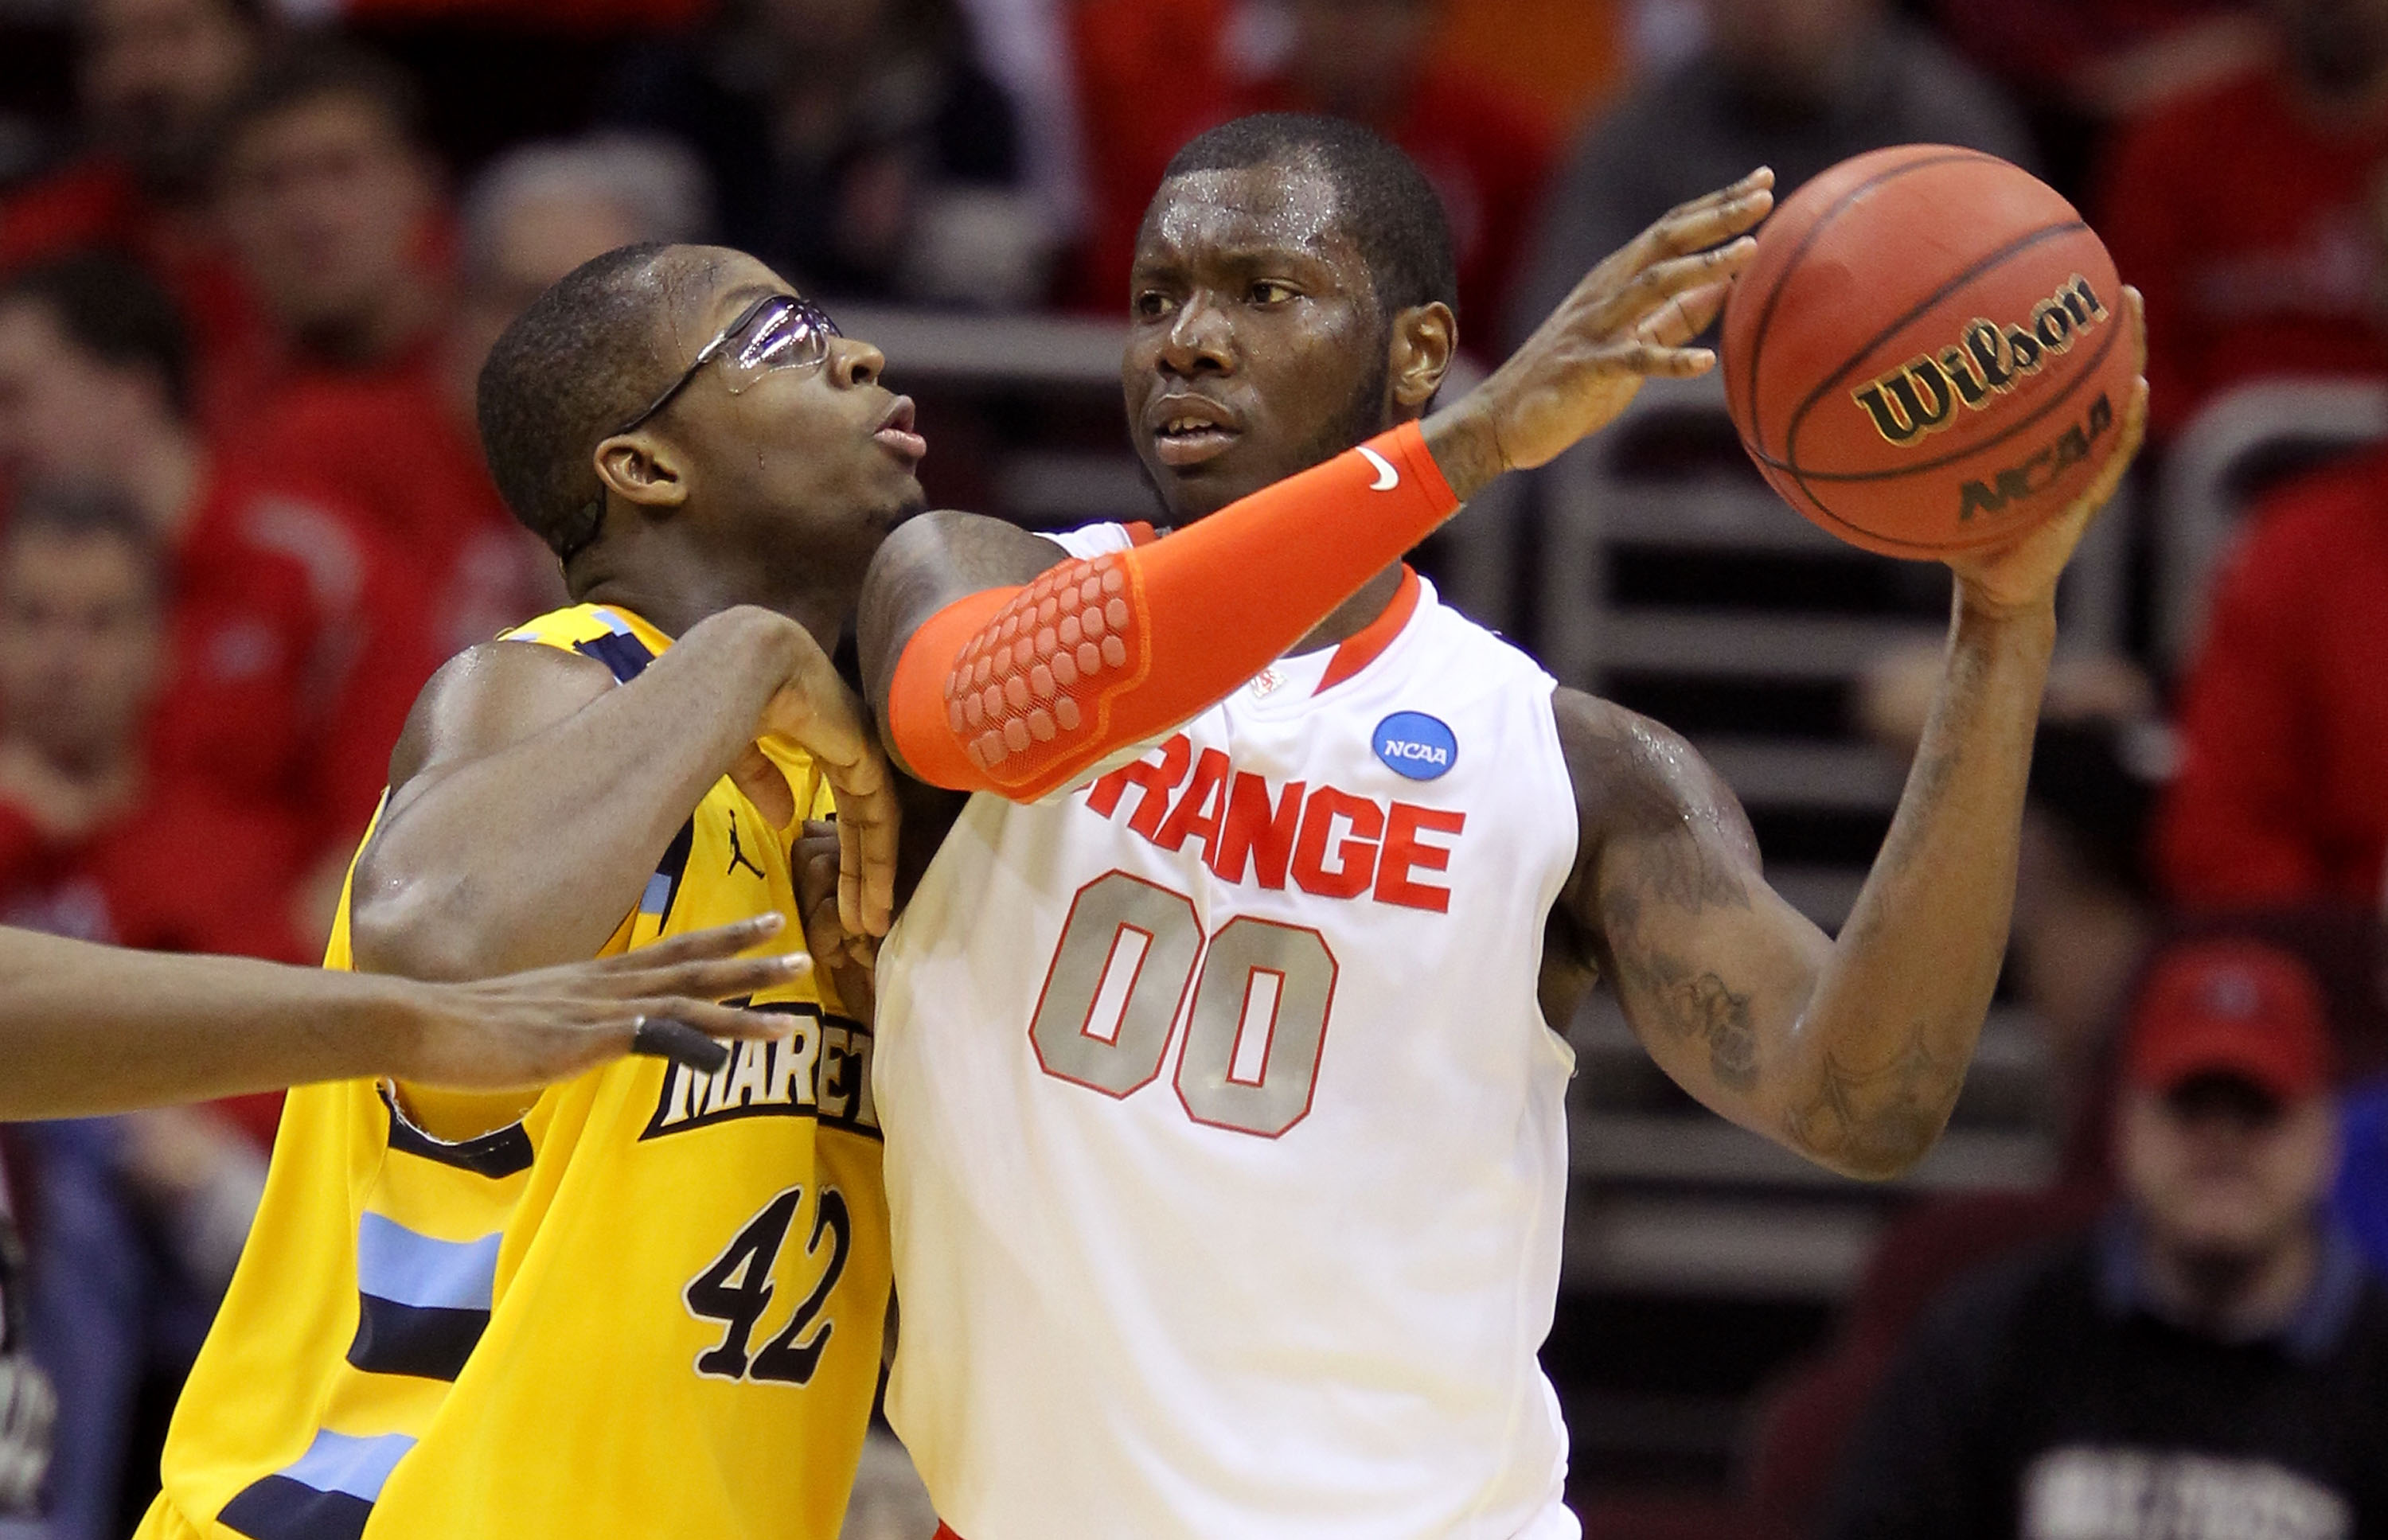 CLEVELAND, OH - MARCH 20: Rick Jackson #00 of the Syracuse Orange handles the ball against Chris Otule #42 of the Marquette Golden Eagles during the third of the 2011 NCAA men's basketball tournament at Quicken Loans Arena on March 20, 2011 in Cleveland,